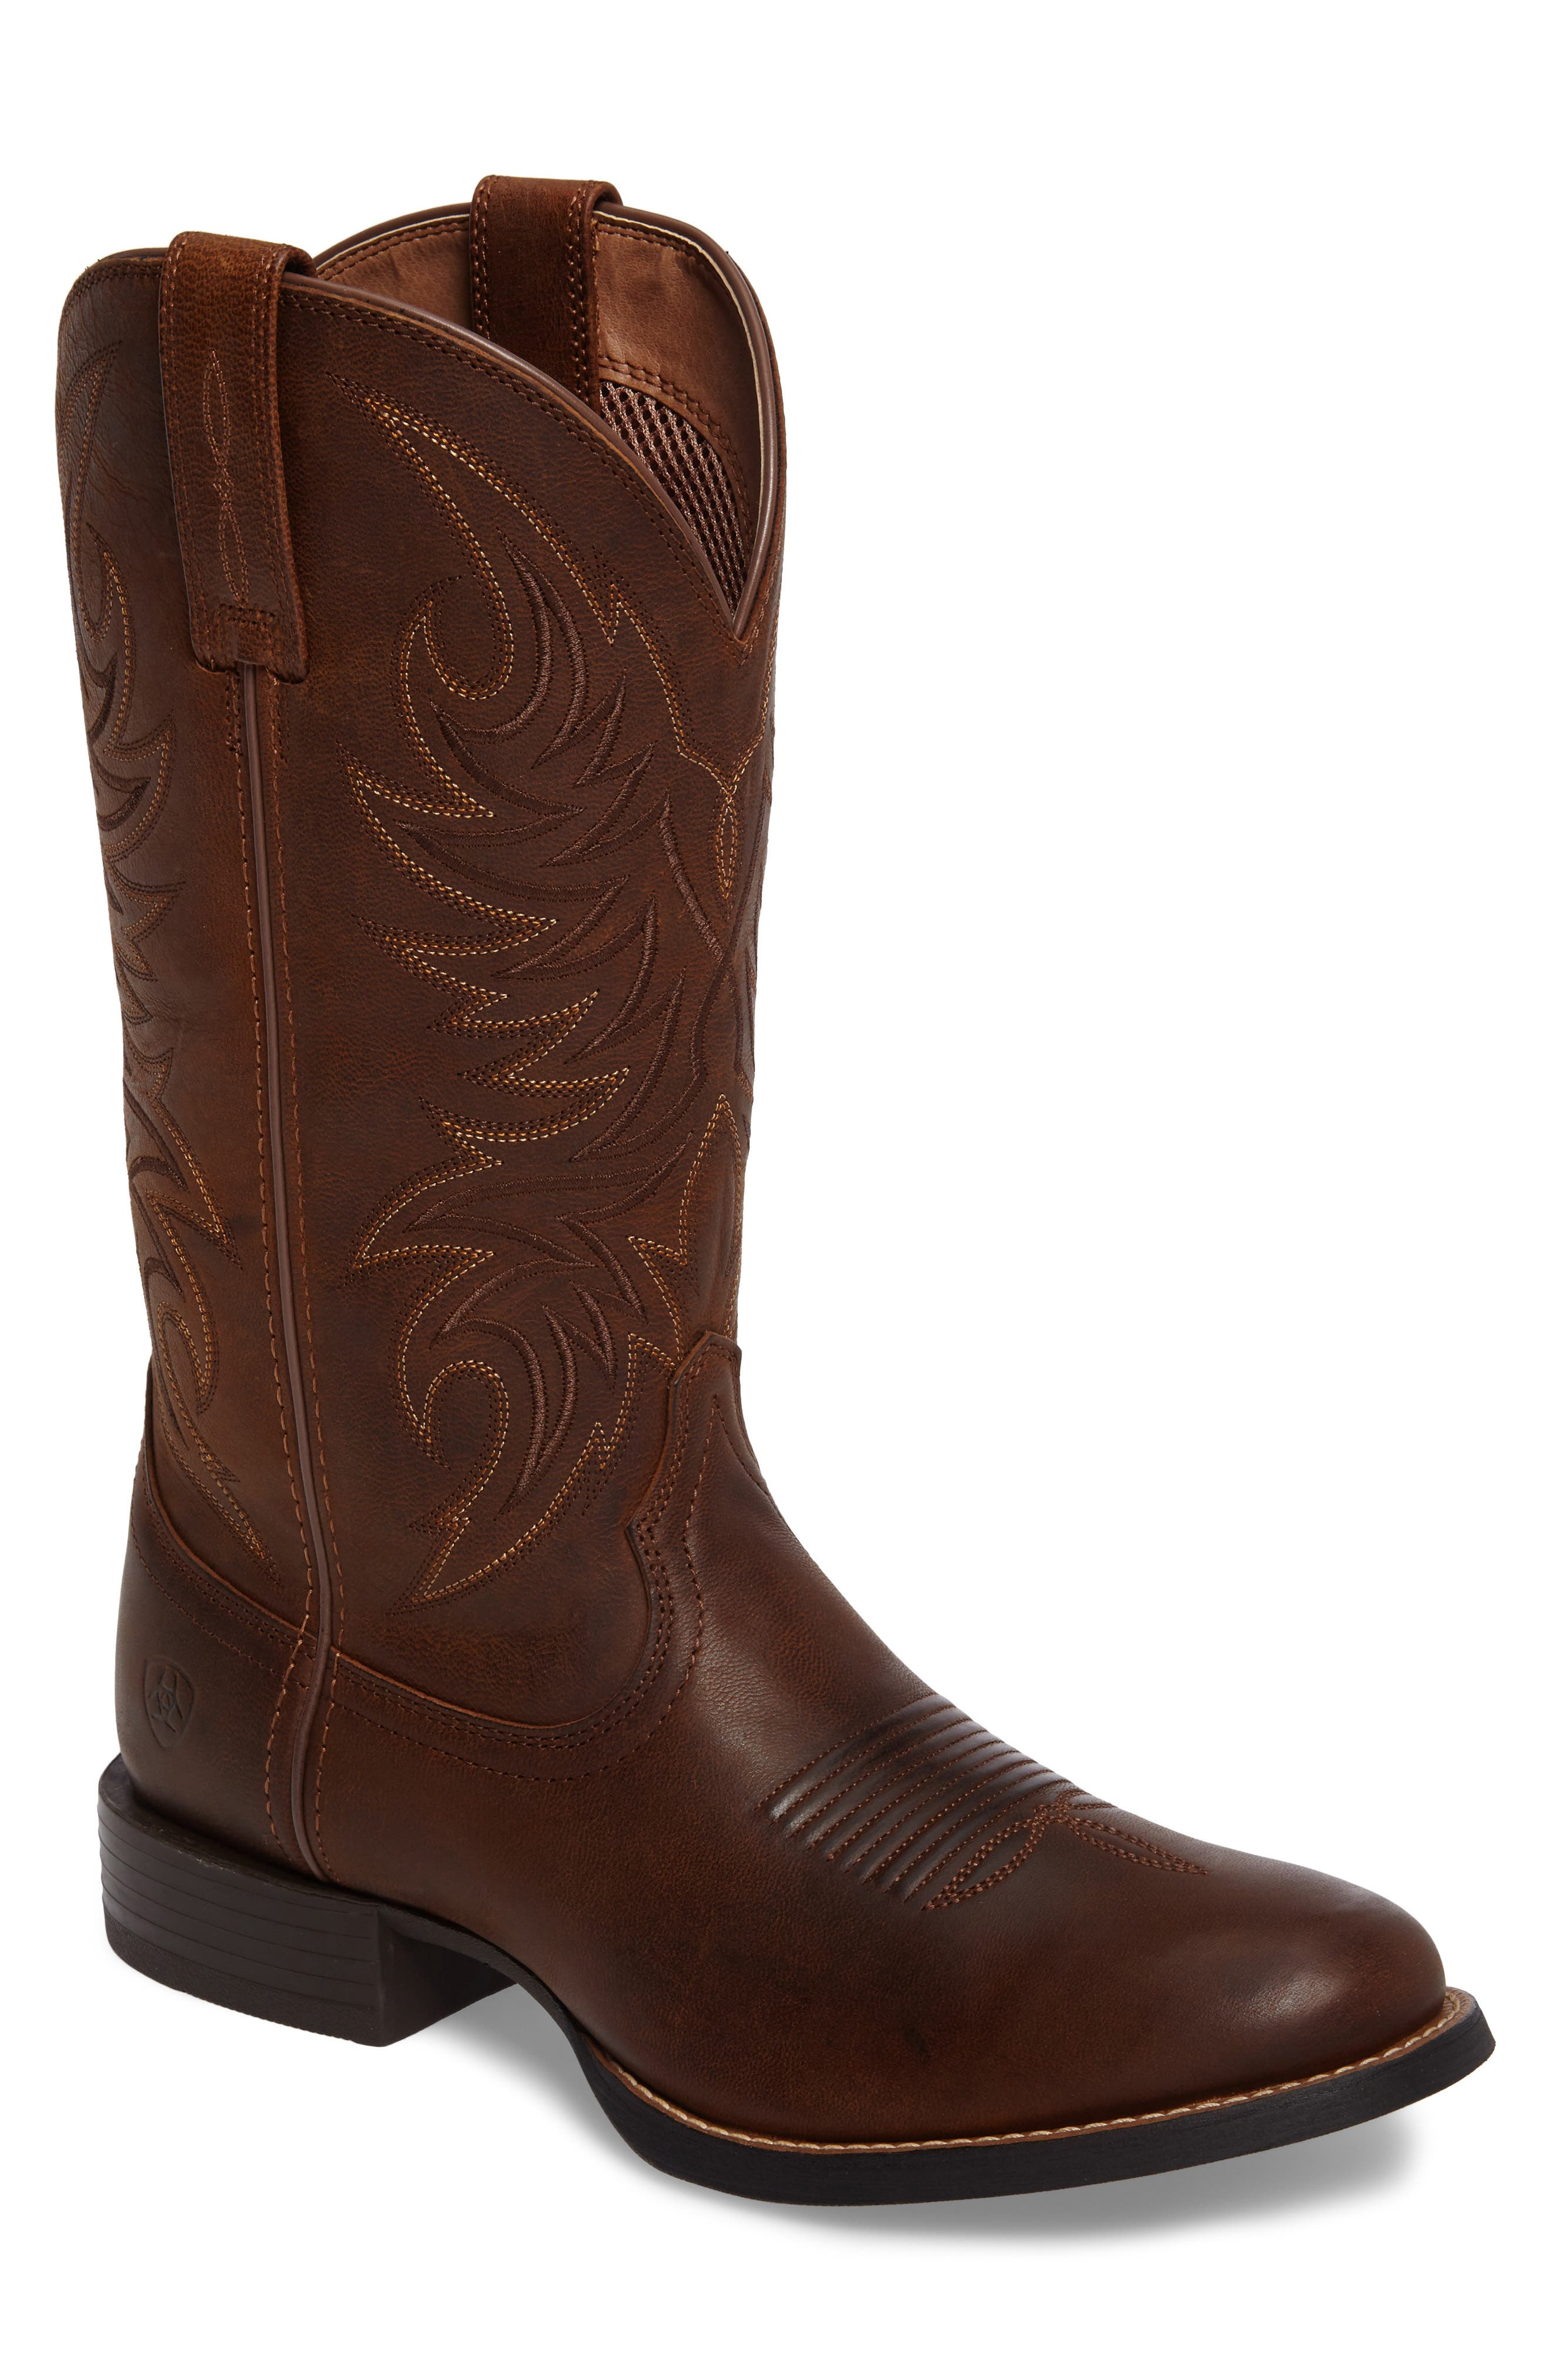 ARIAT, Sport Horsemen Cowboy Boot, Main thumbnail 1, color, 200